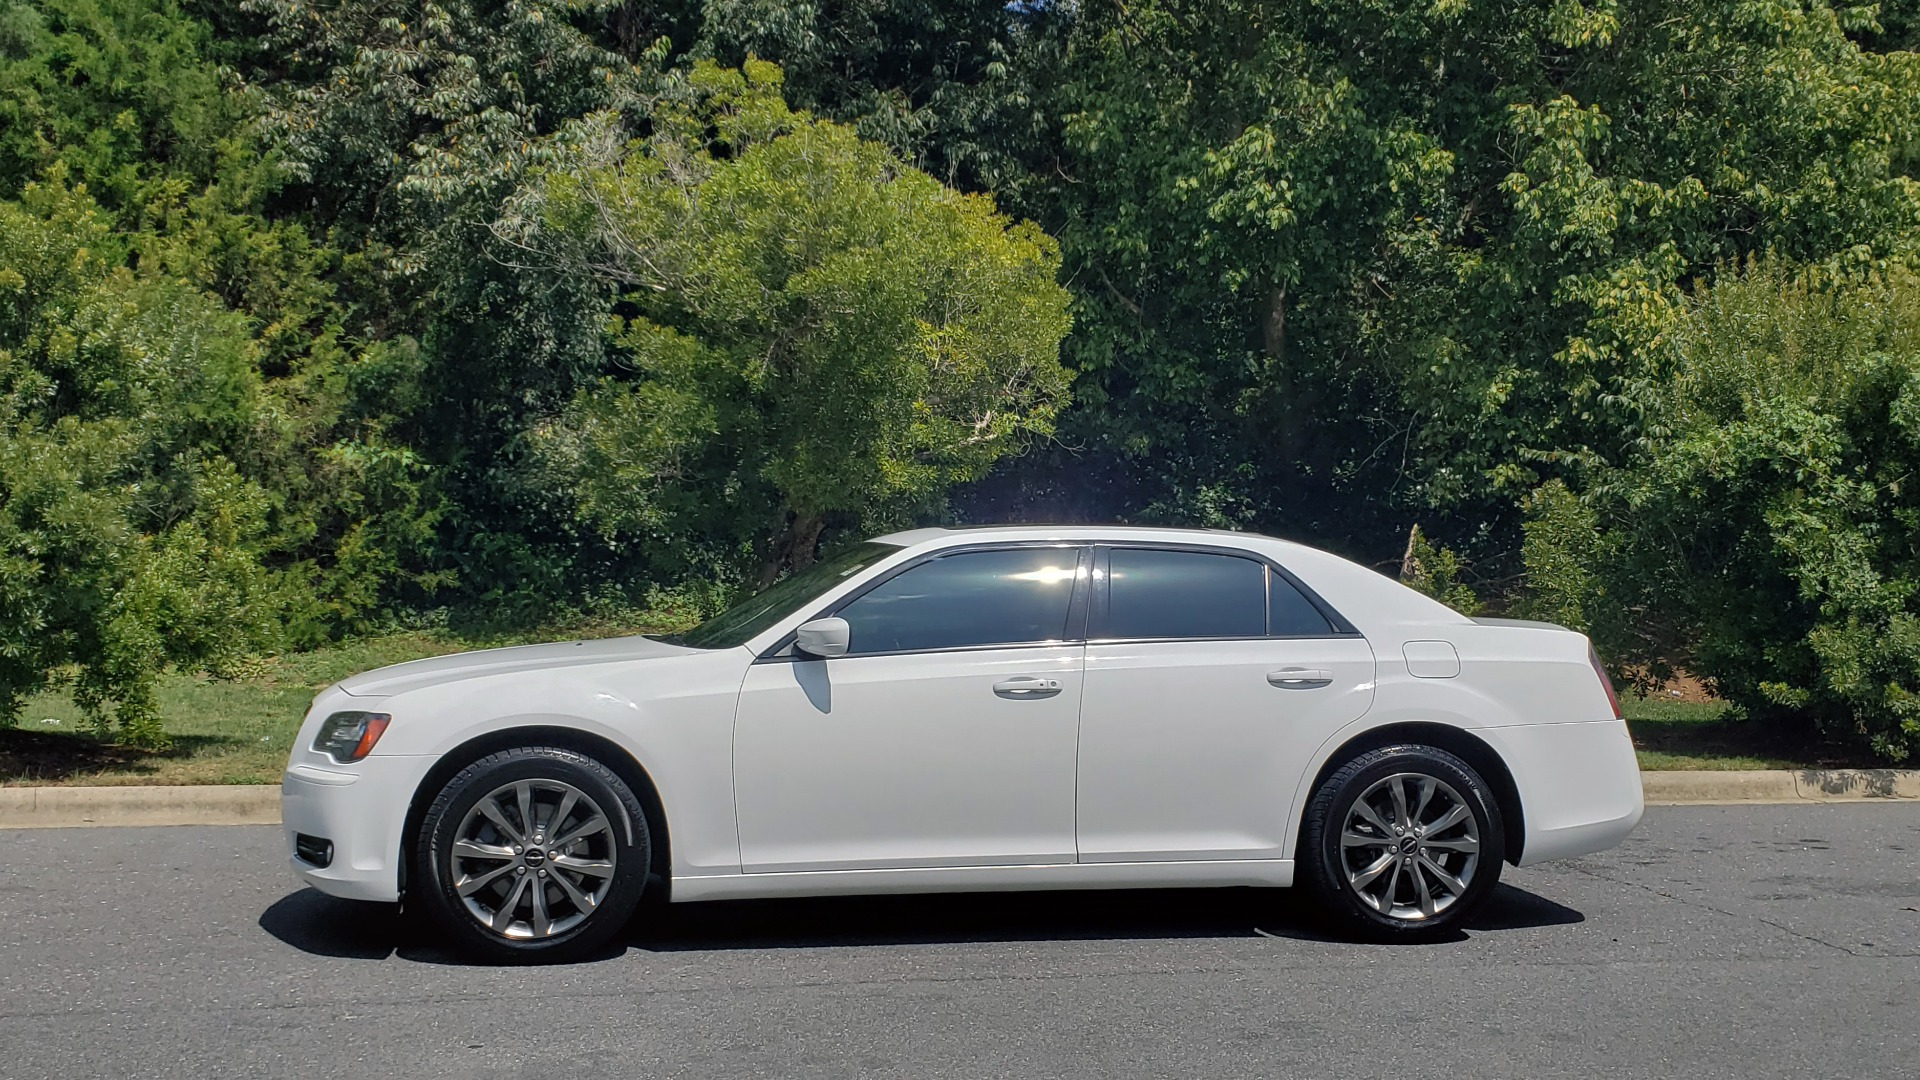 Used 2014 Chrysler 300 S / AWD / NAV / PANO-ROOF / HTD STS / BEATS SOUND / REARVIEW for sale Sold at Formula Imports in Charlotte NC 28227 2